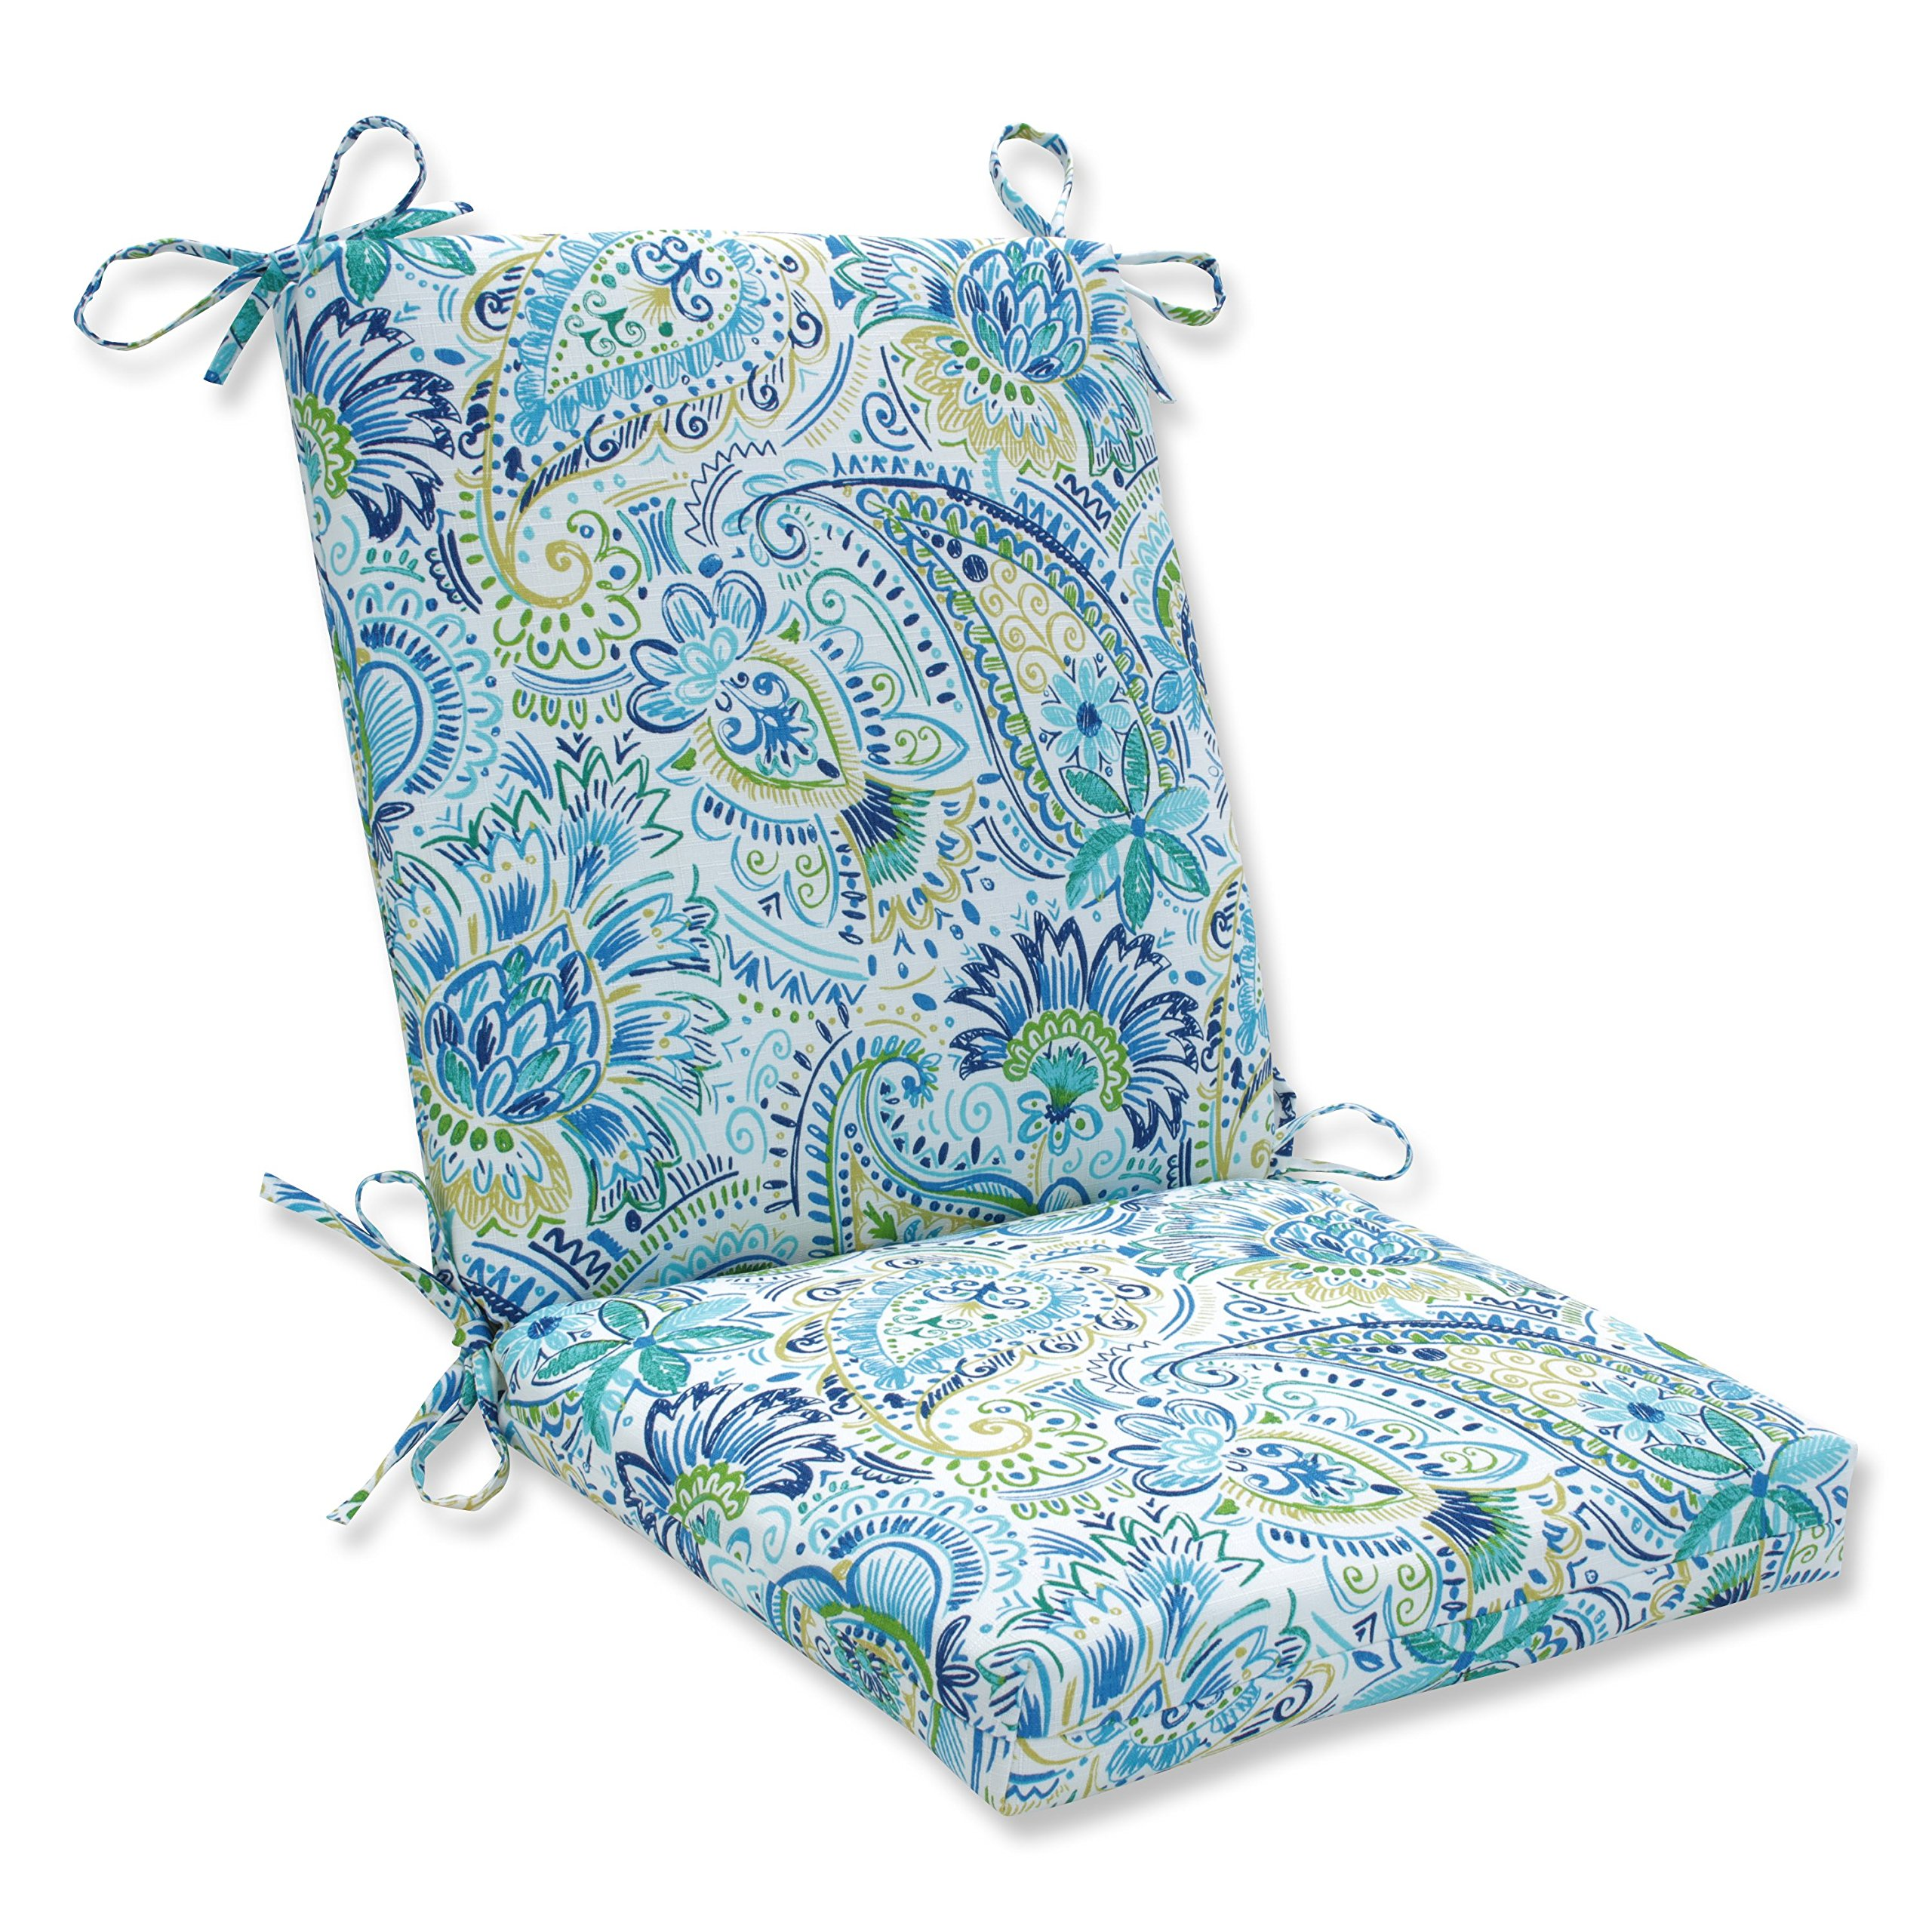 Pillow Perfect Outdoor | Indoor Gilford Baltic Squared Corners Chair Cushion by Pillow Perfect